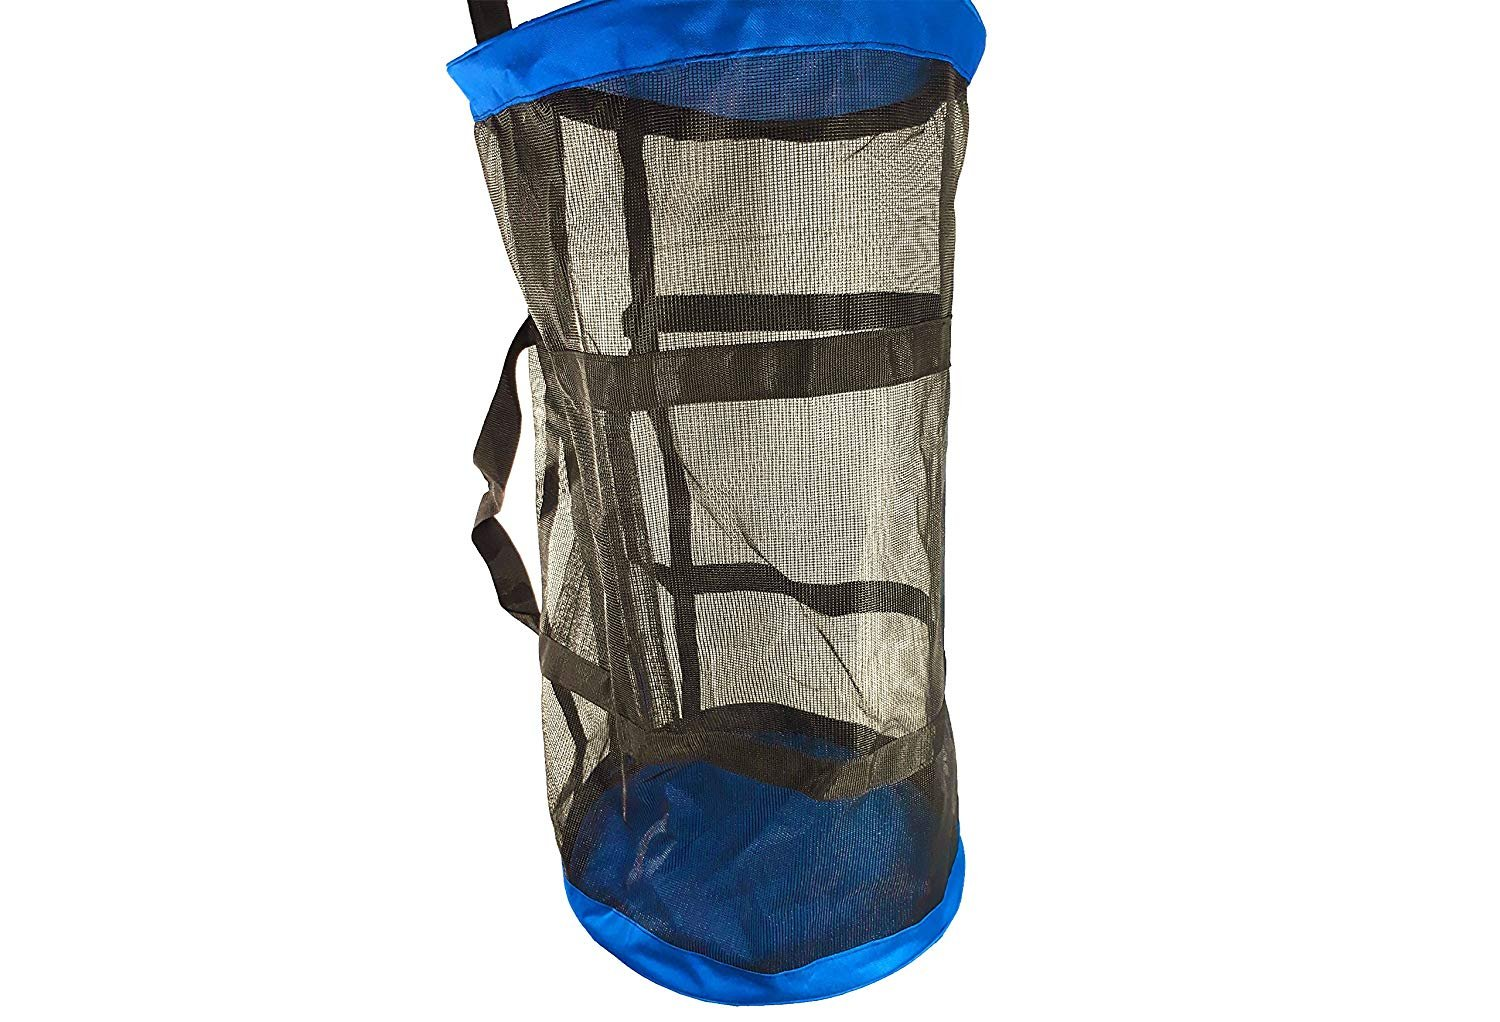 Large Duffel Dive Mesh Bag. Swimming, Snorkeling, Wetsuit, Water Sports Mesh Bag. Massive Storage: Large main compartment & Seperate Storage side pockets